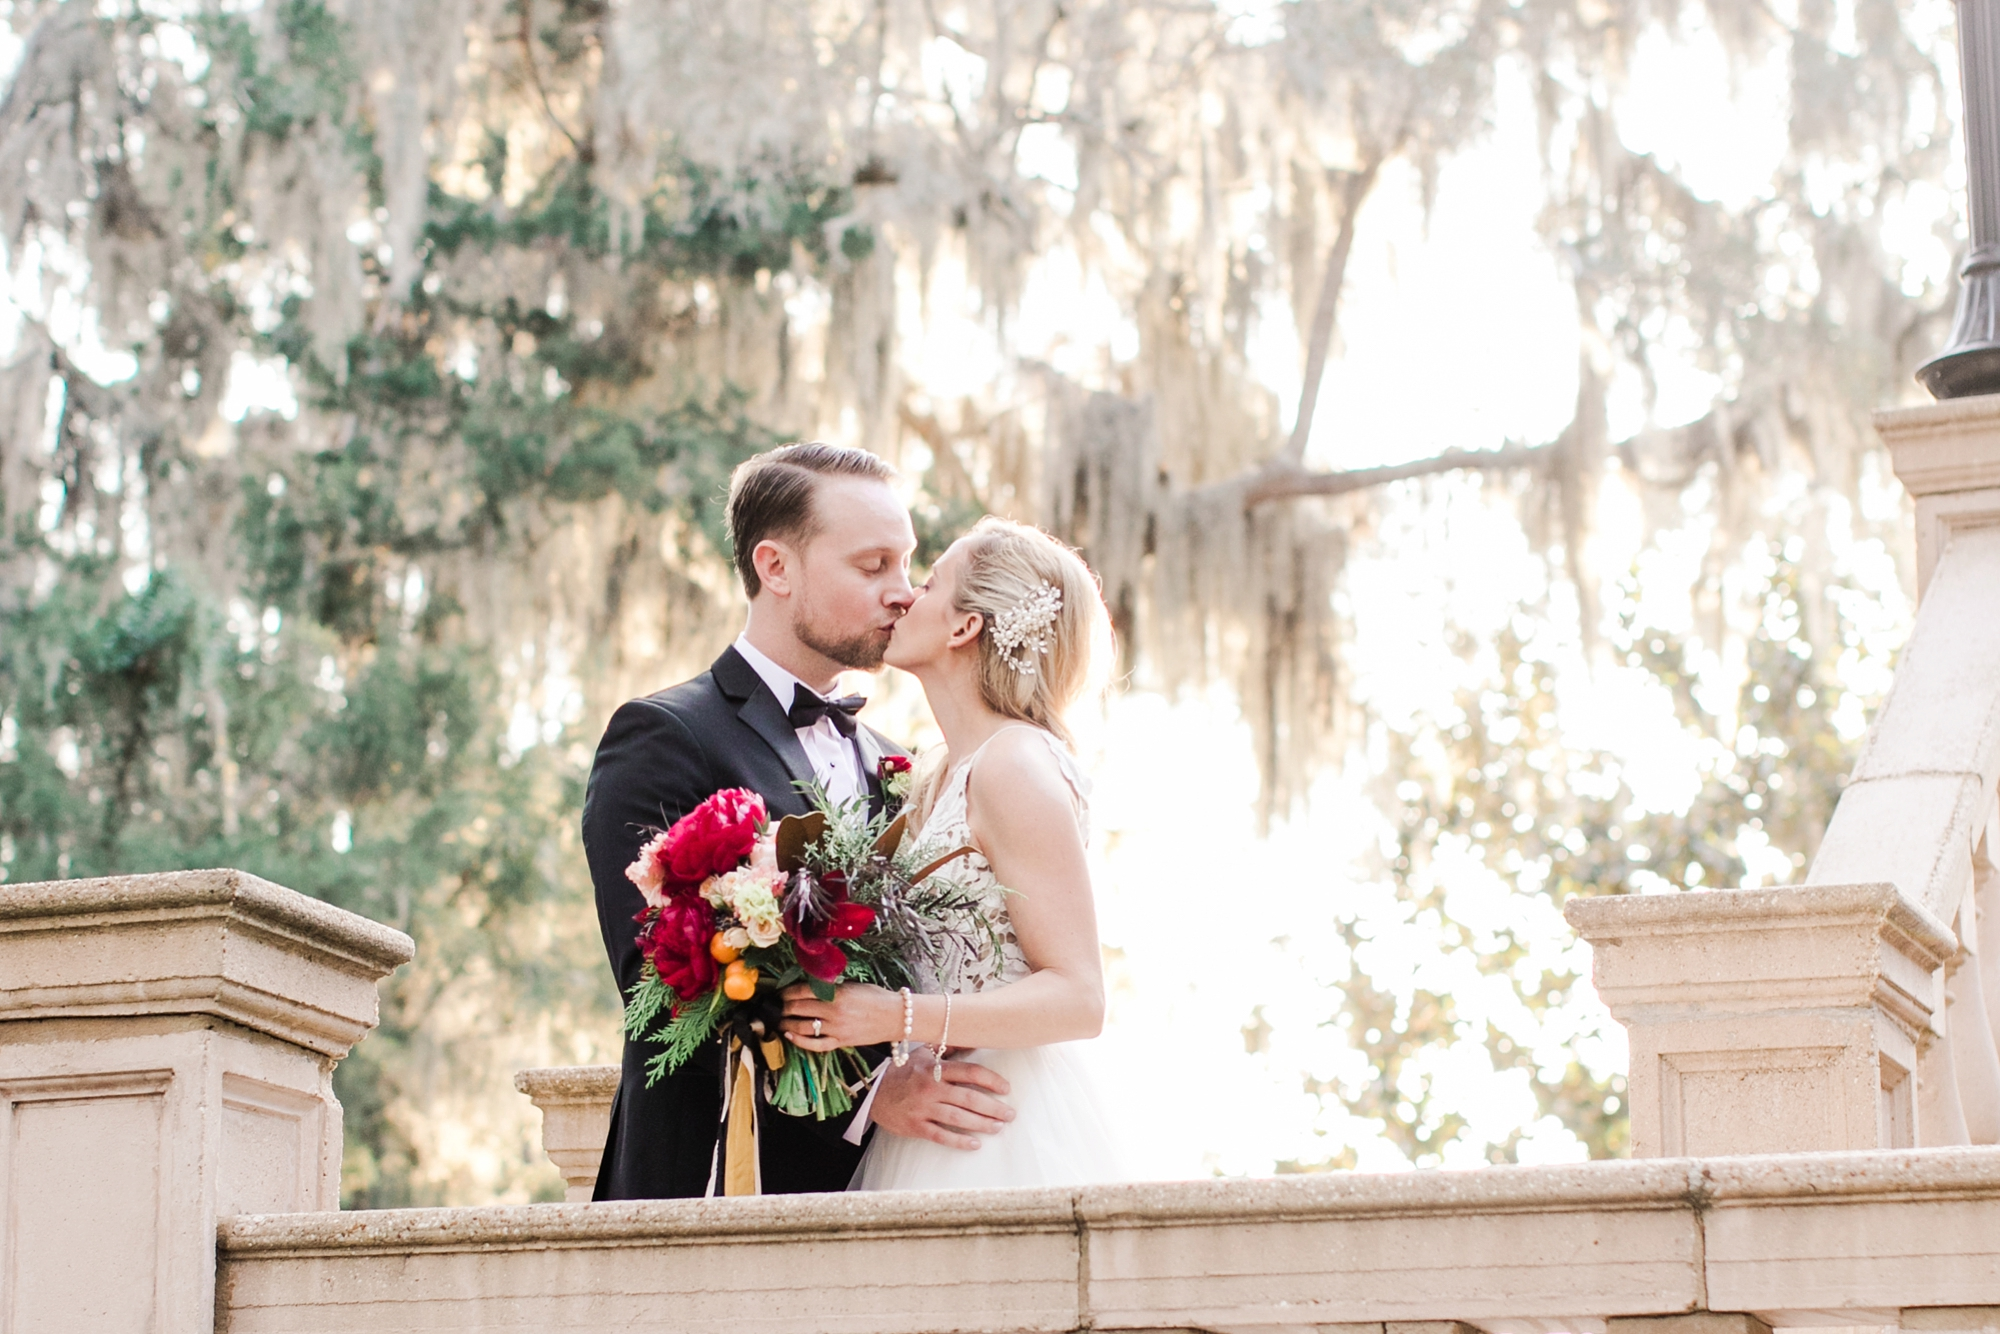 Natalie Broach Photography | Epping Forest Yacht Club Wedding Photographer| Epping Forest Wedding | Jacksonville Florida Wedding Photographer | North Florida Wedding Photographer | Fine Art Wedding Photographer